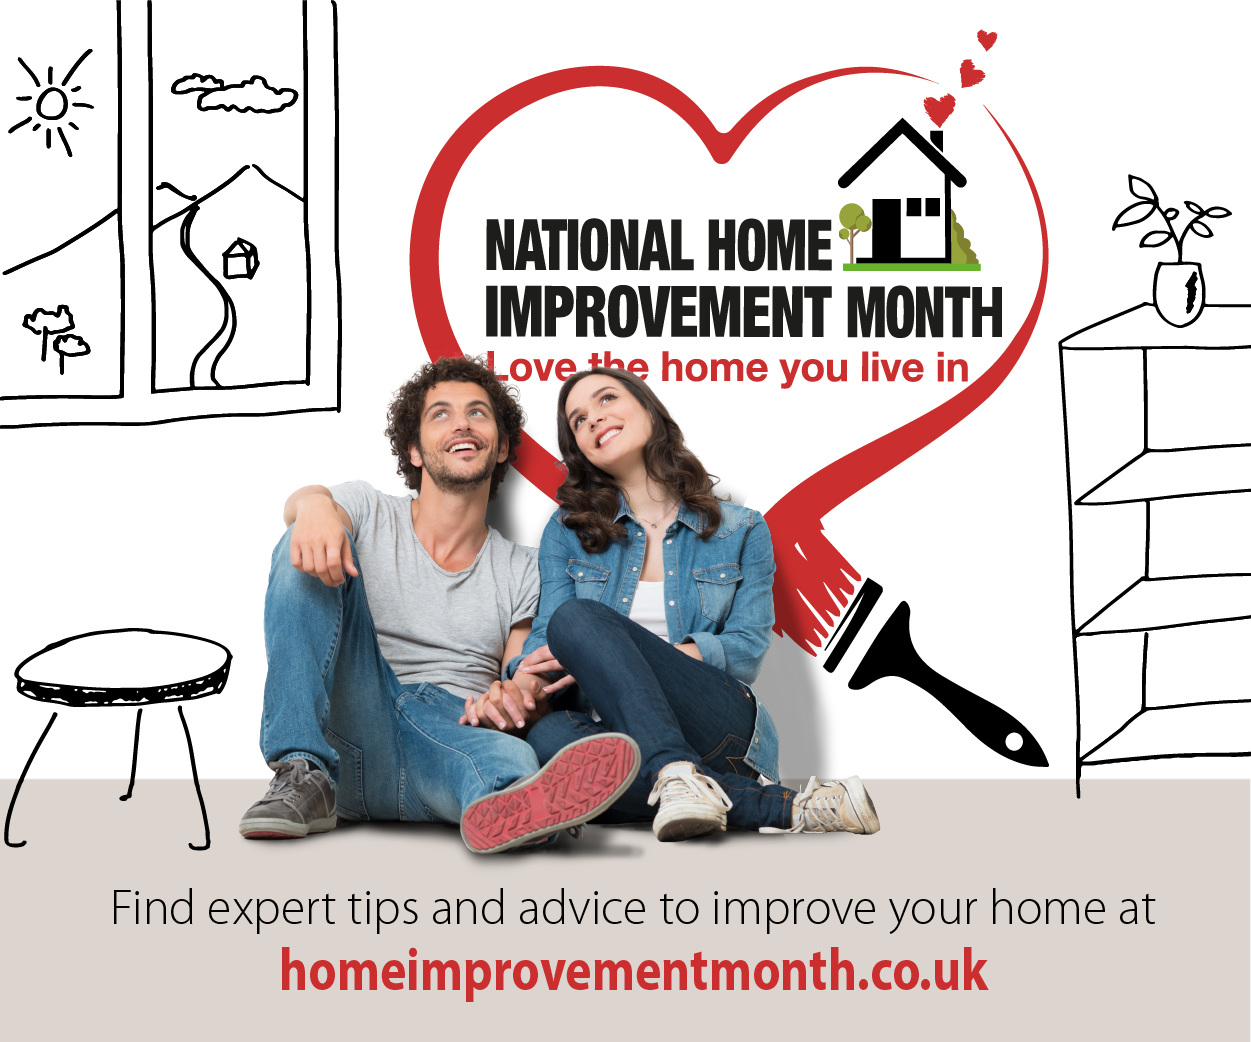 IronmongeryDirect supports National Home Improvement Month with positive mental health message